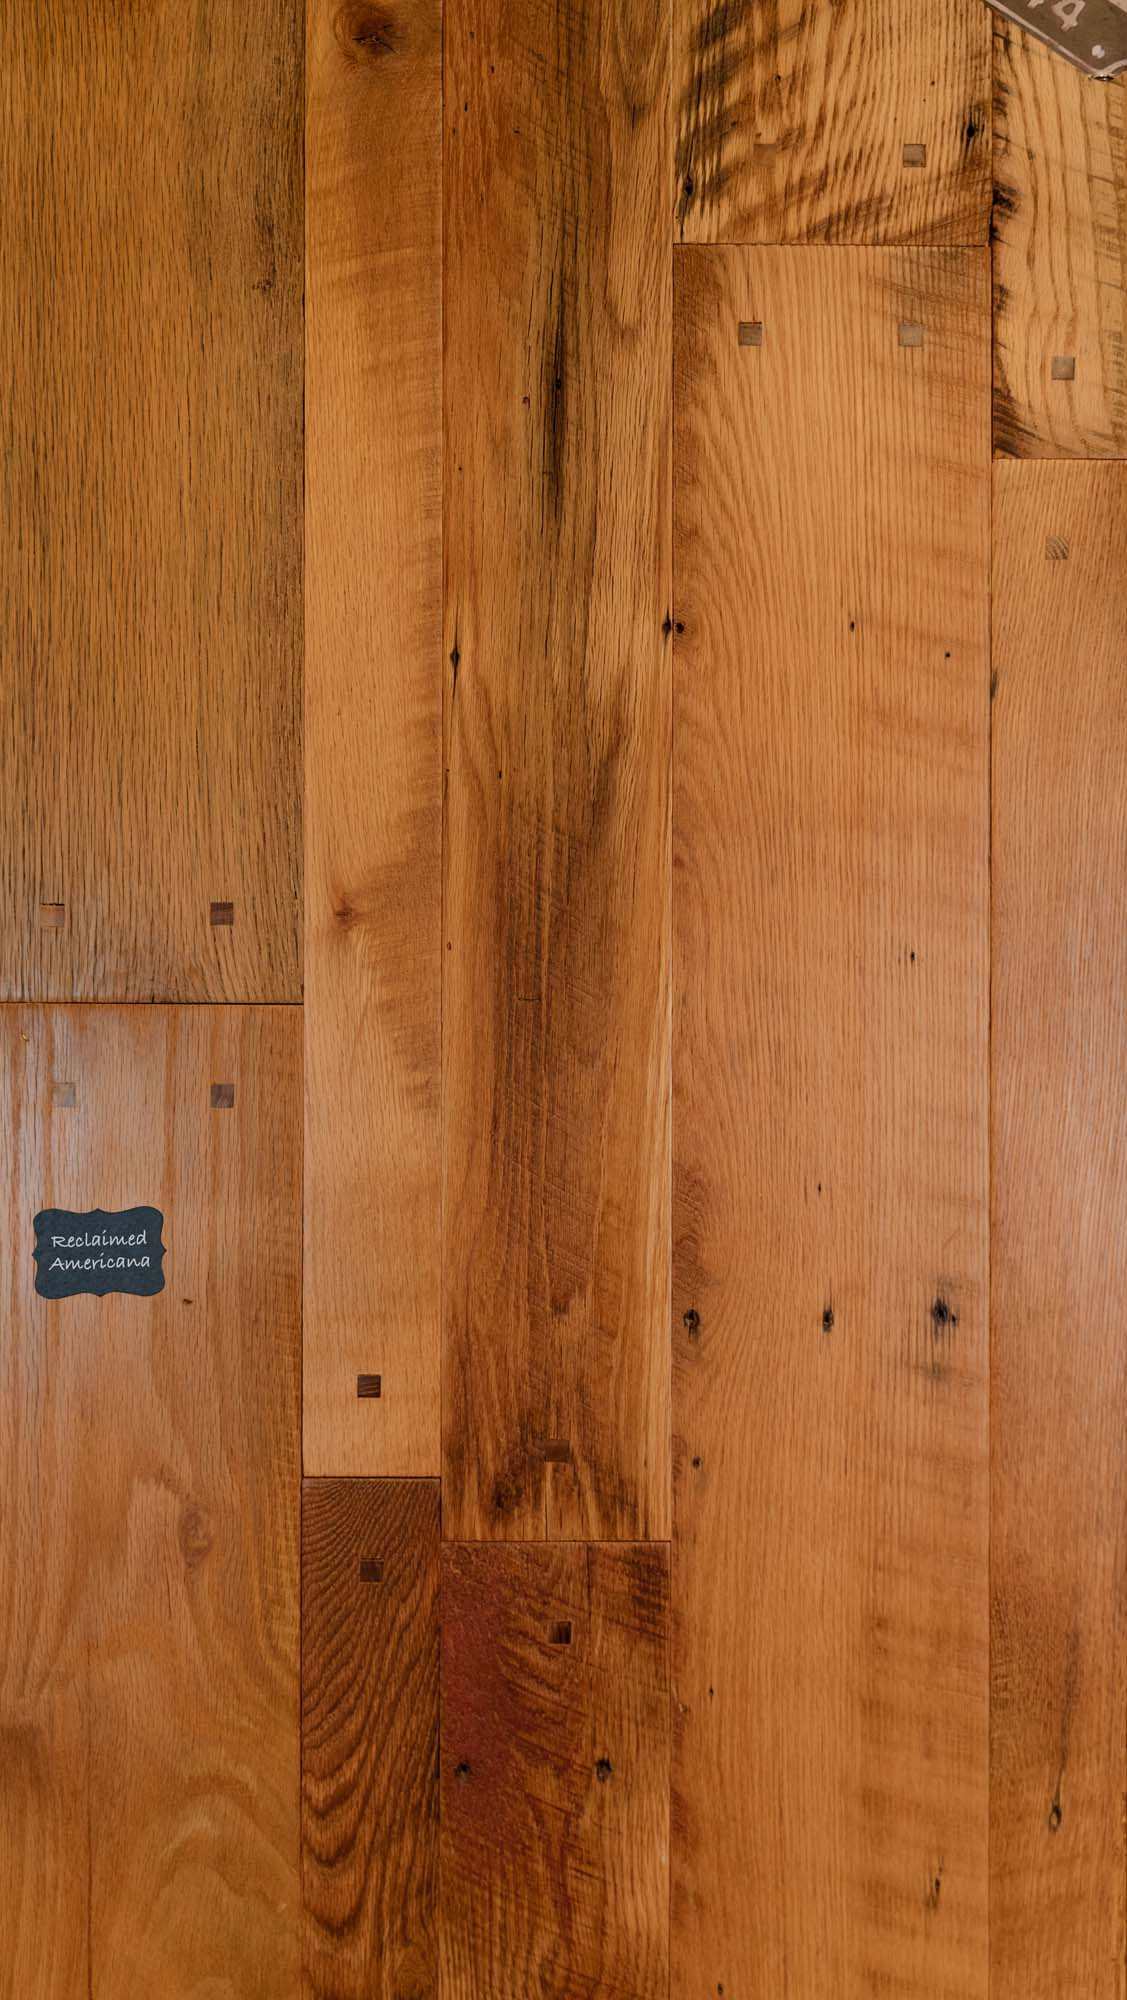 Reclaimed Americana Square Peg Wood Flooring. Our Reclaimed lineup is our premium quality product line with a unique and classic look